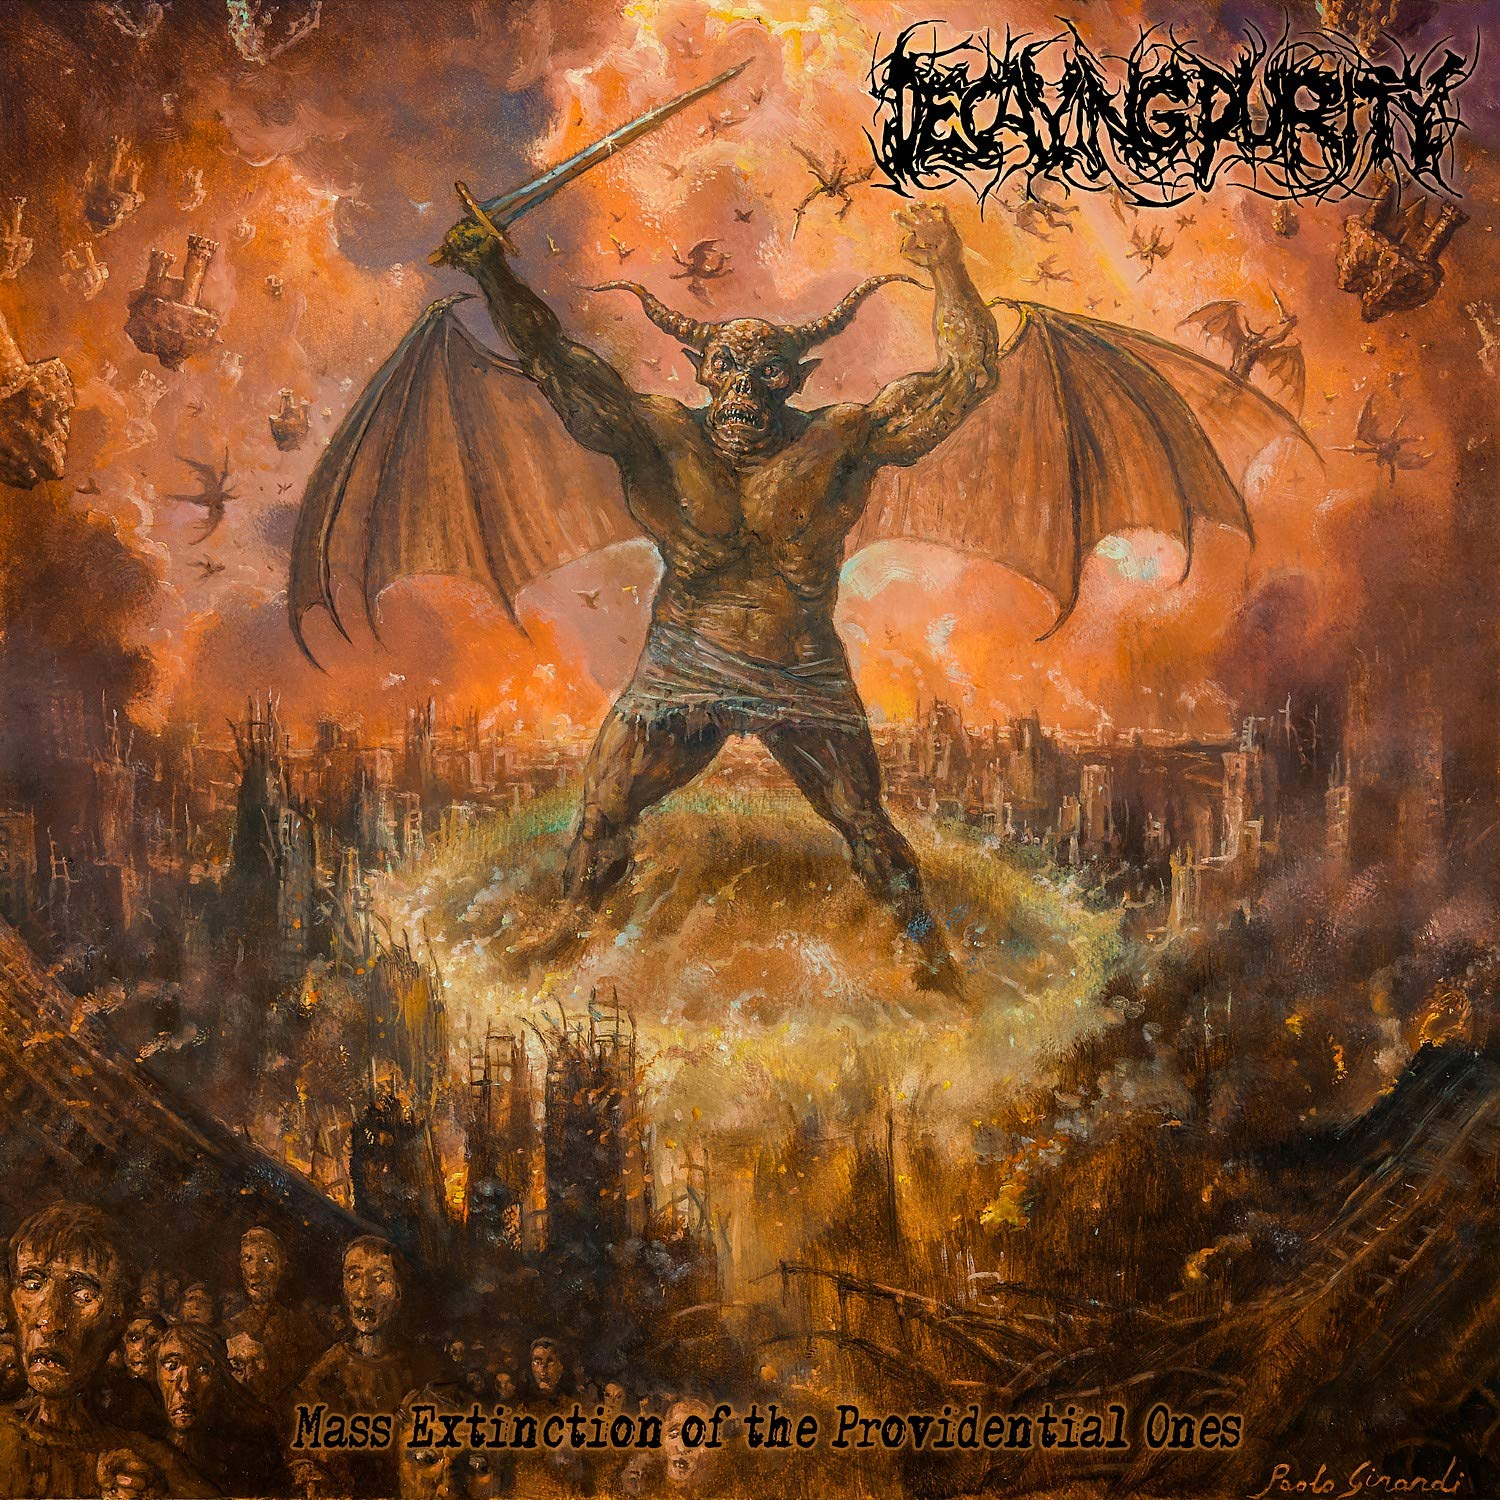 Decaying Purity - Mass Extinction of the Providential Ones (2020) [FLAC] Download